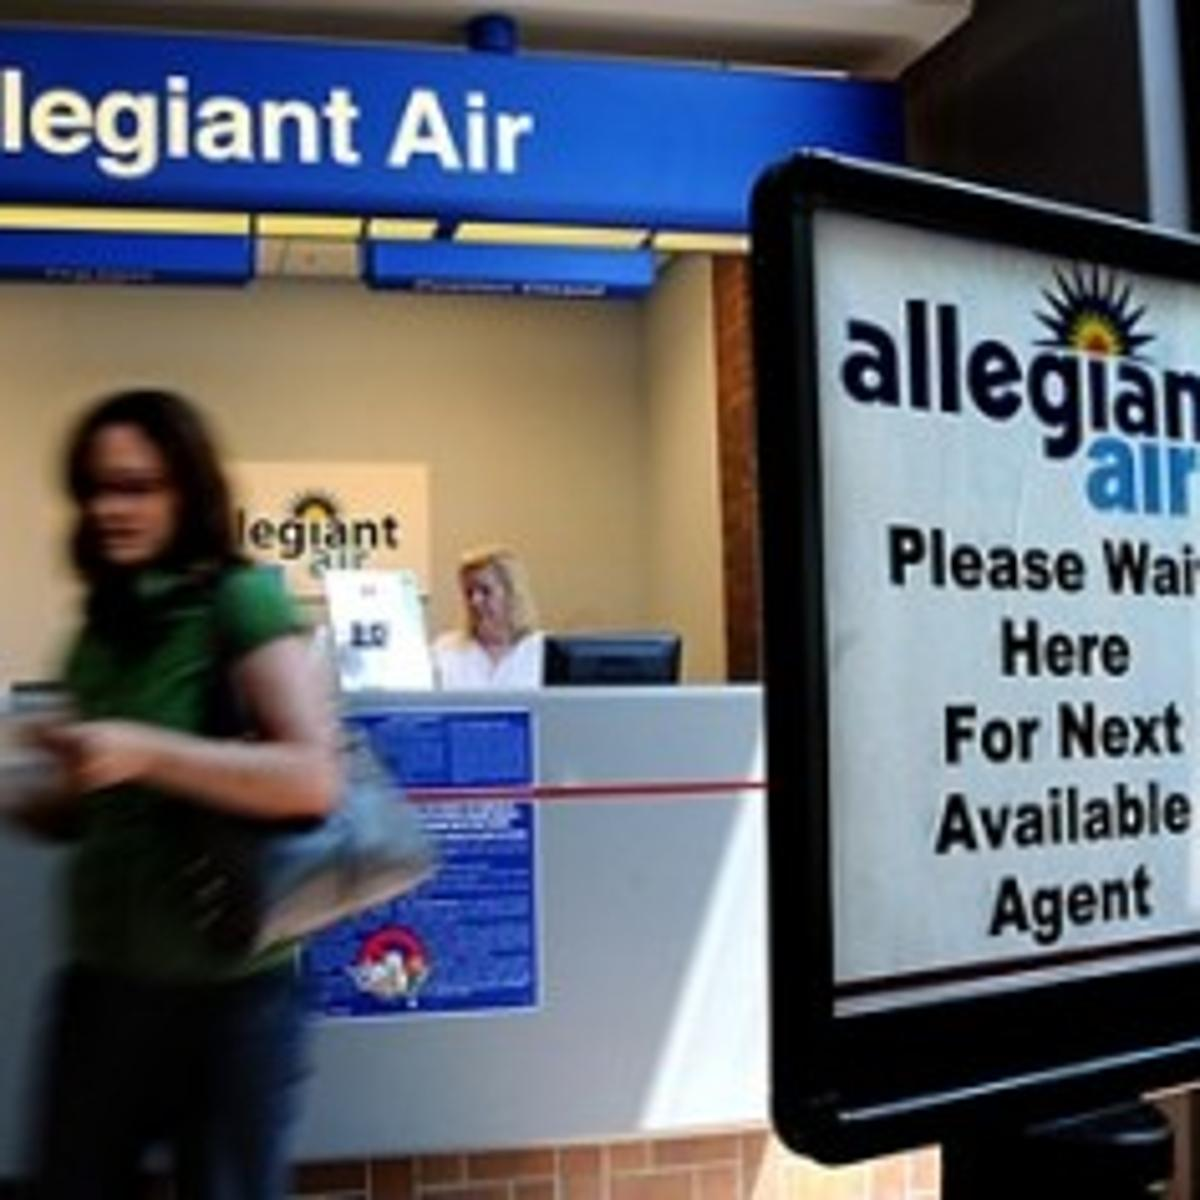 Allegiant Soars While Other Airlines Fall Business Journalstar Com